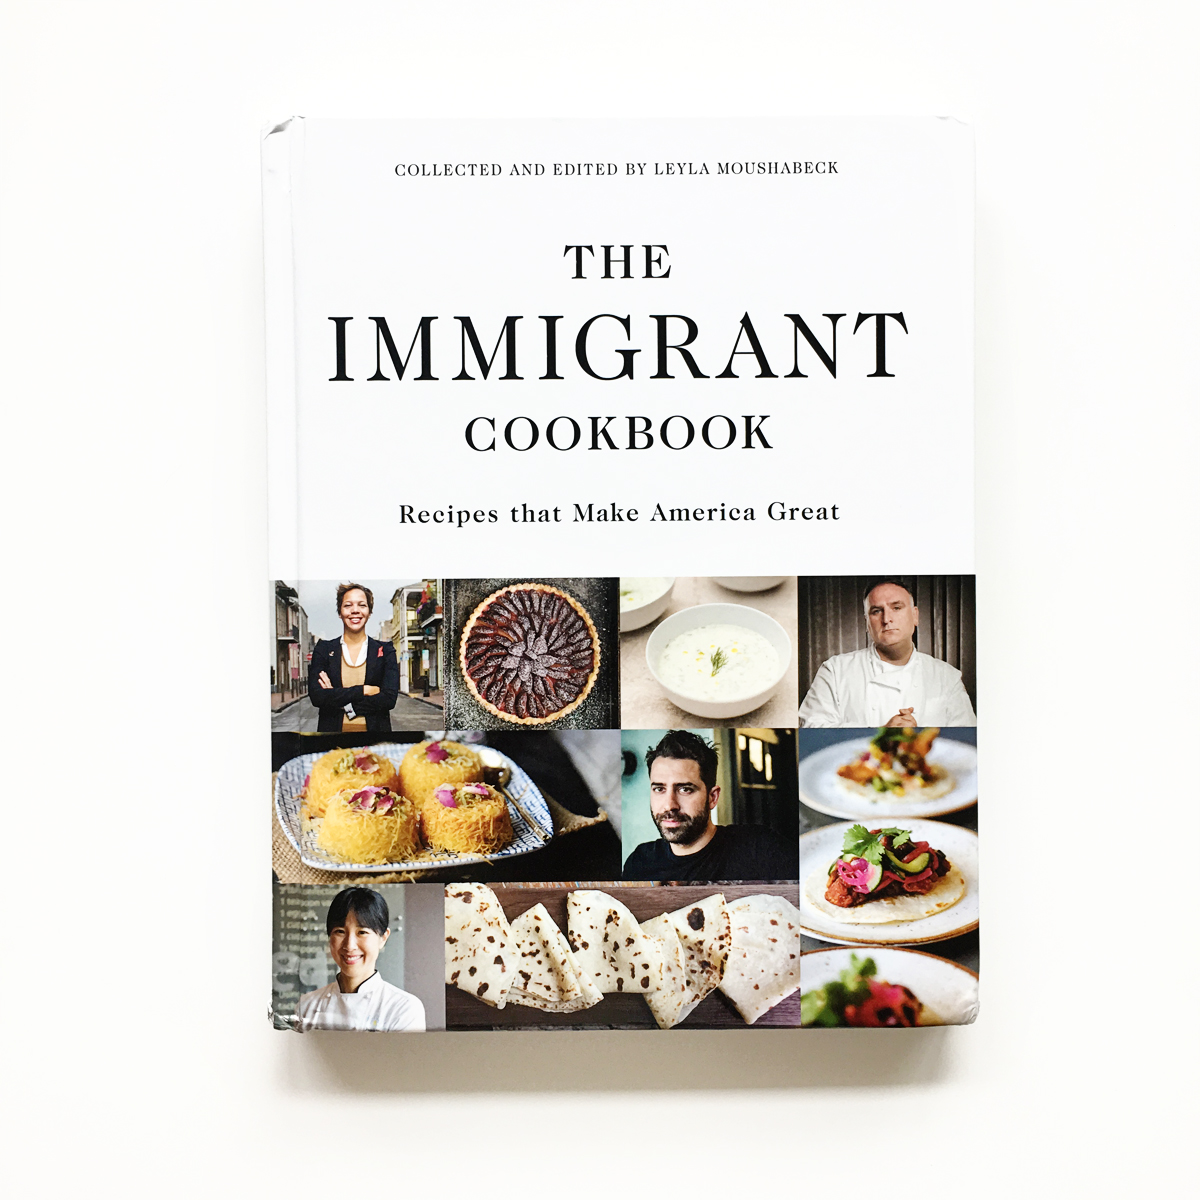 The Immigrant Cookbook: Recipes that Make America Great | Books For Diversity